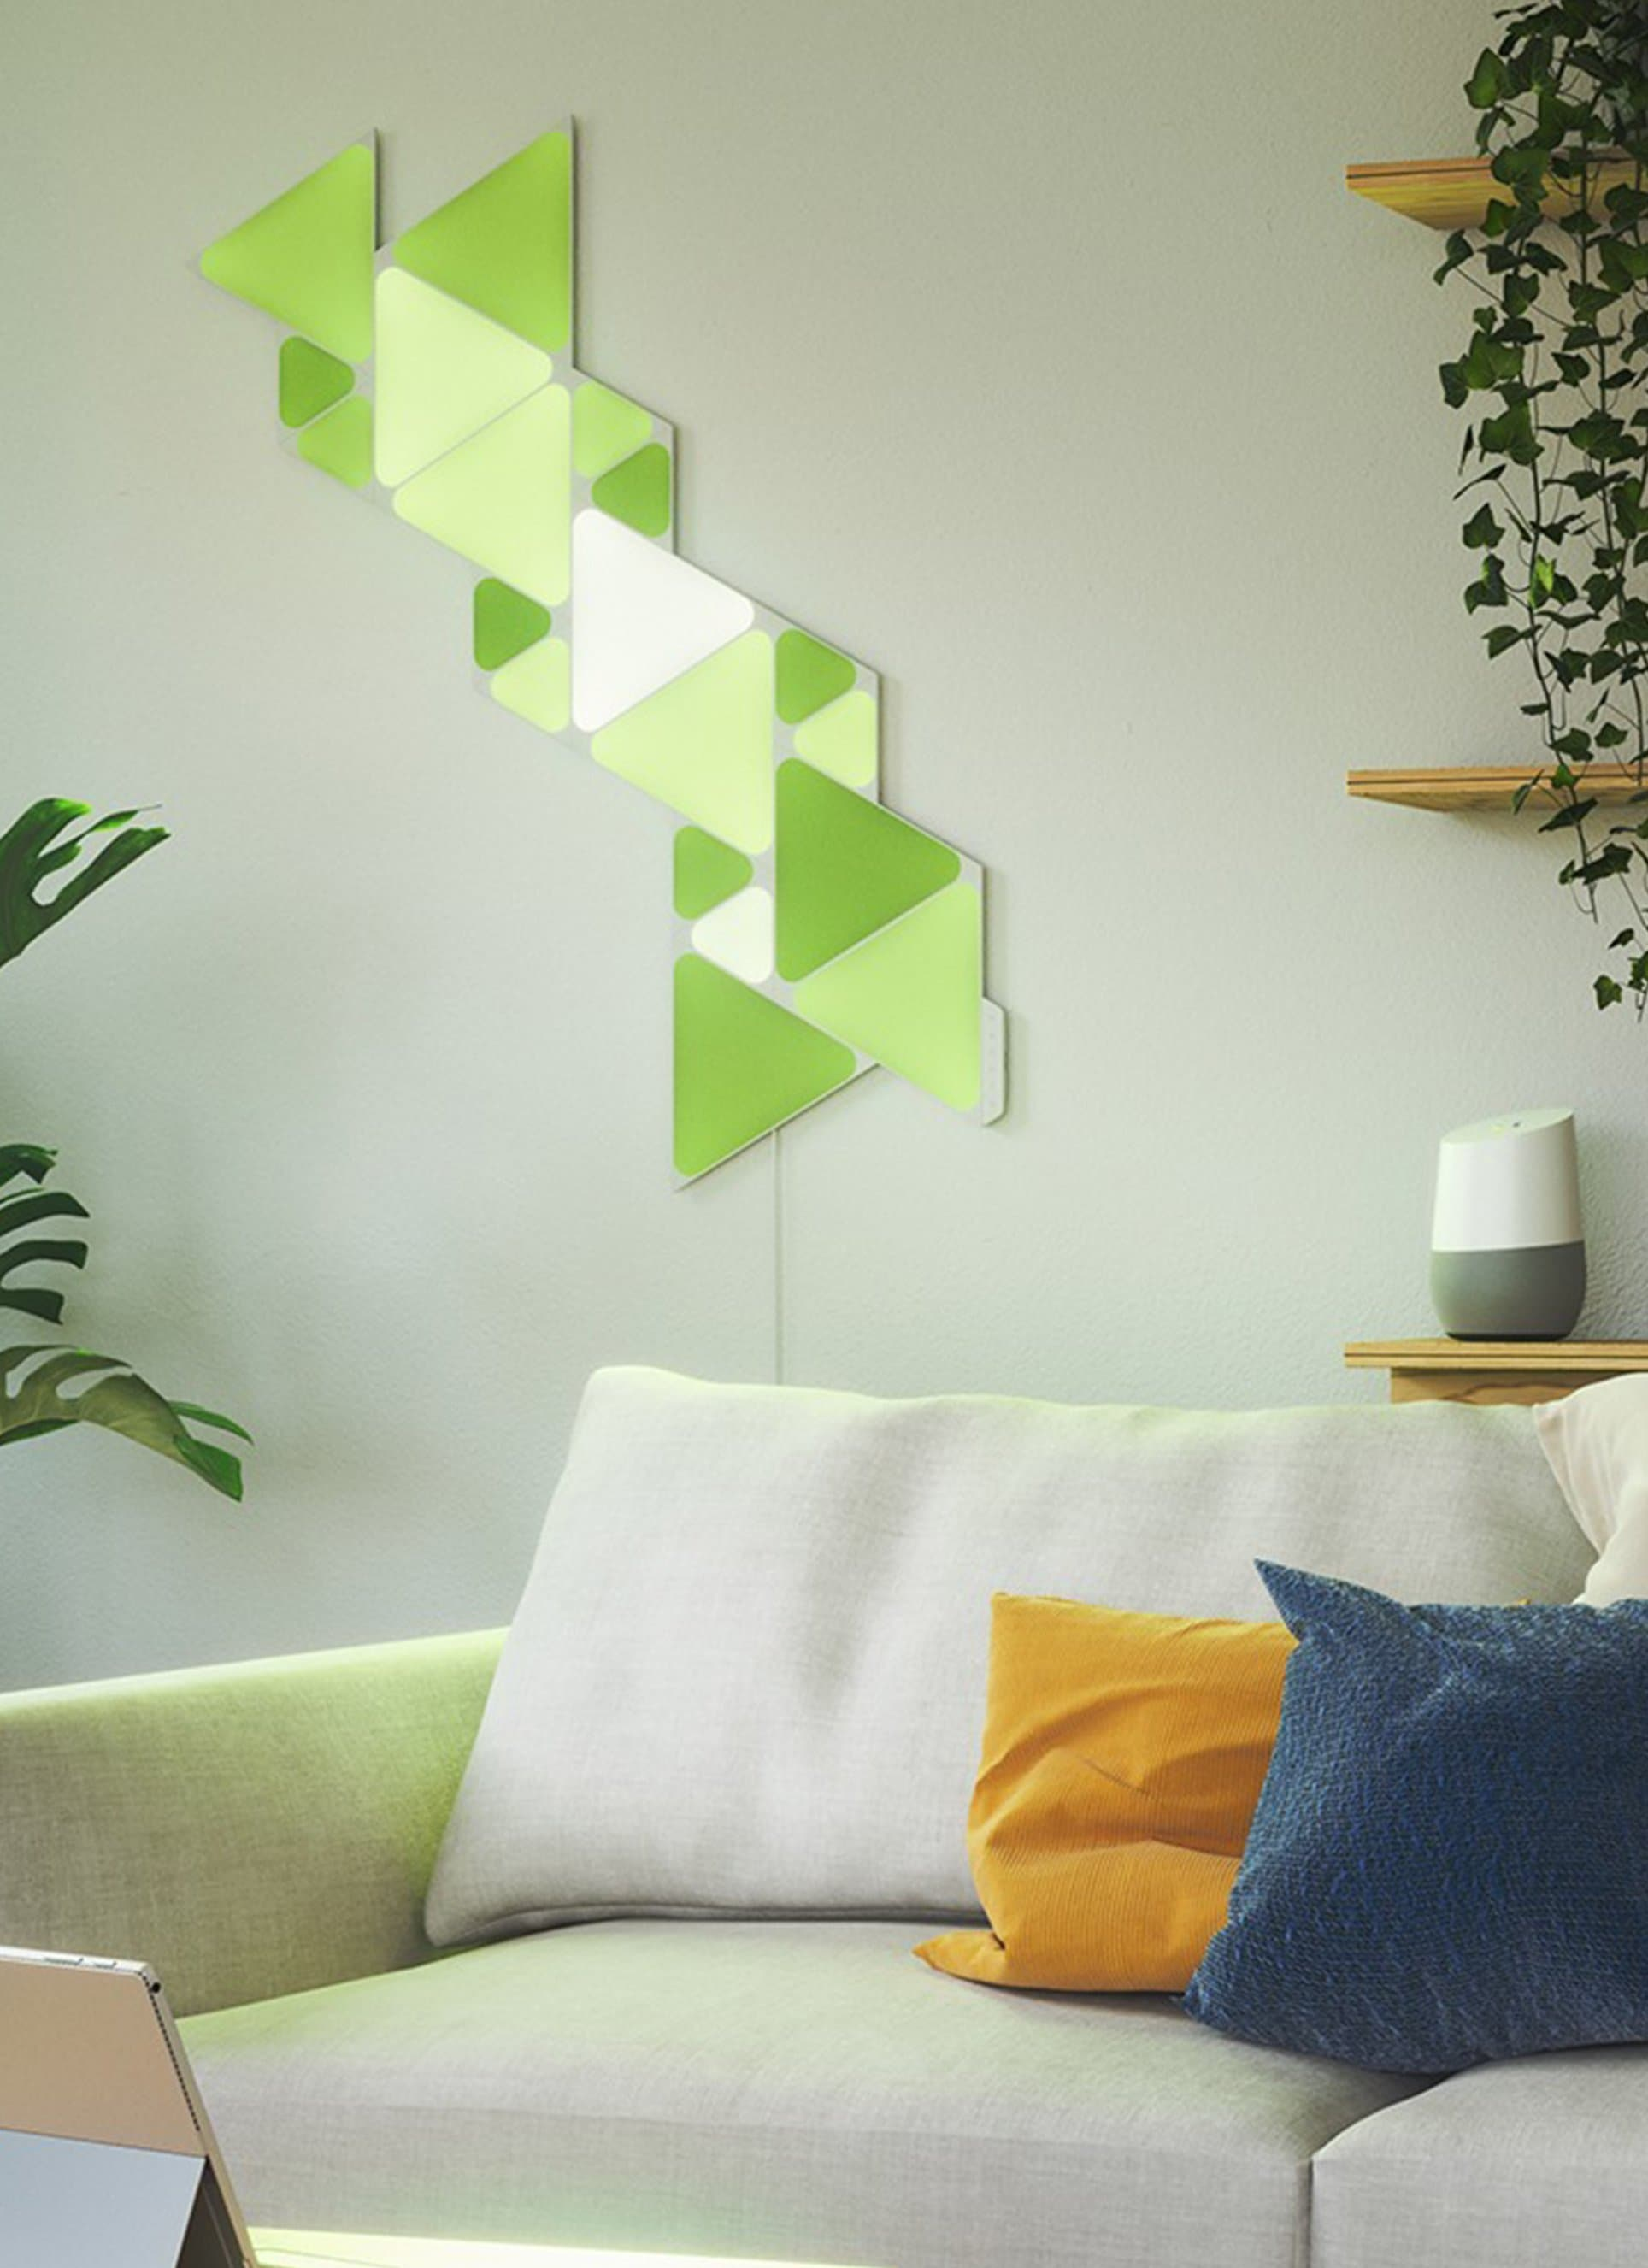 Nanoleaf Shapes